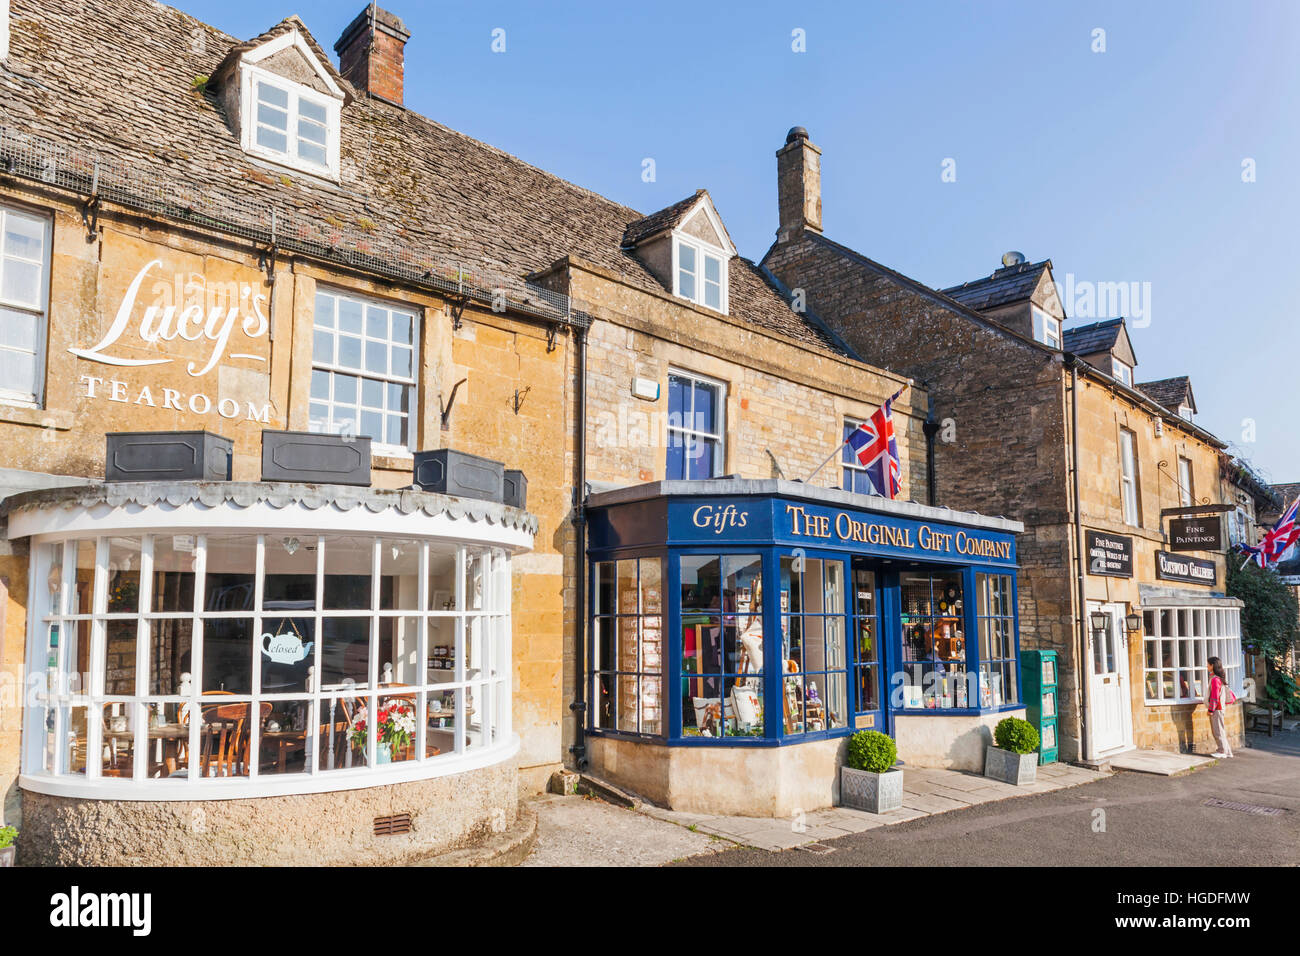 England, Gloucestershire, Cotswolds, Stow-on-the-wold - Stock Image